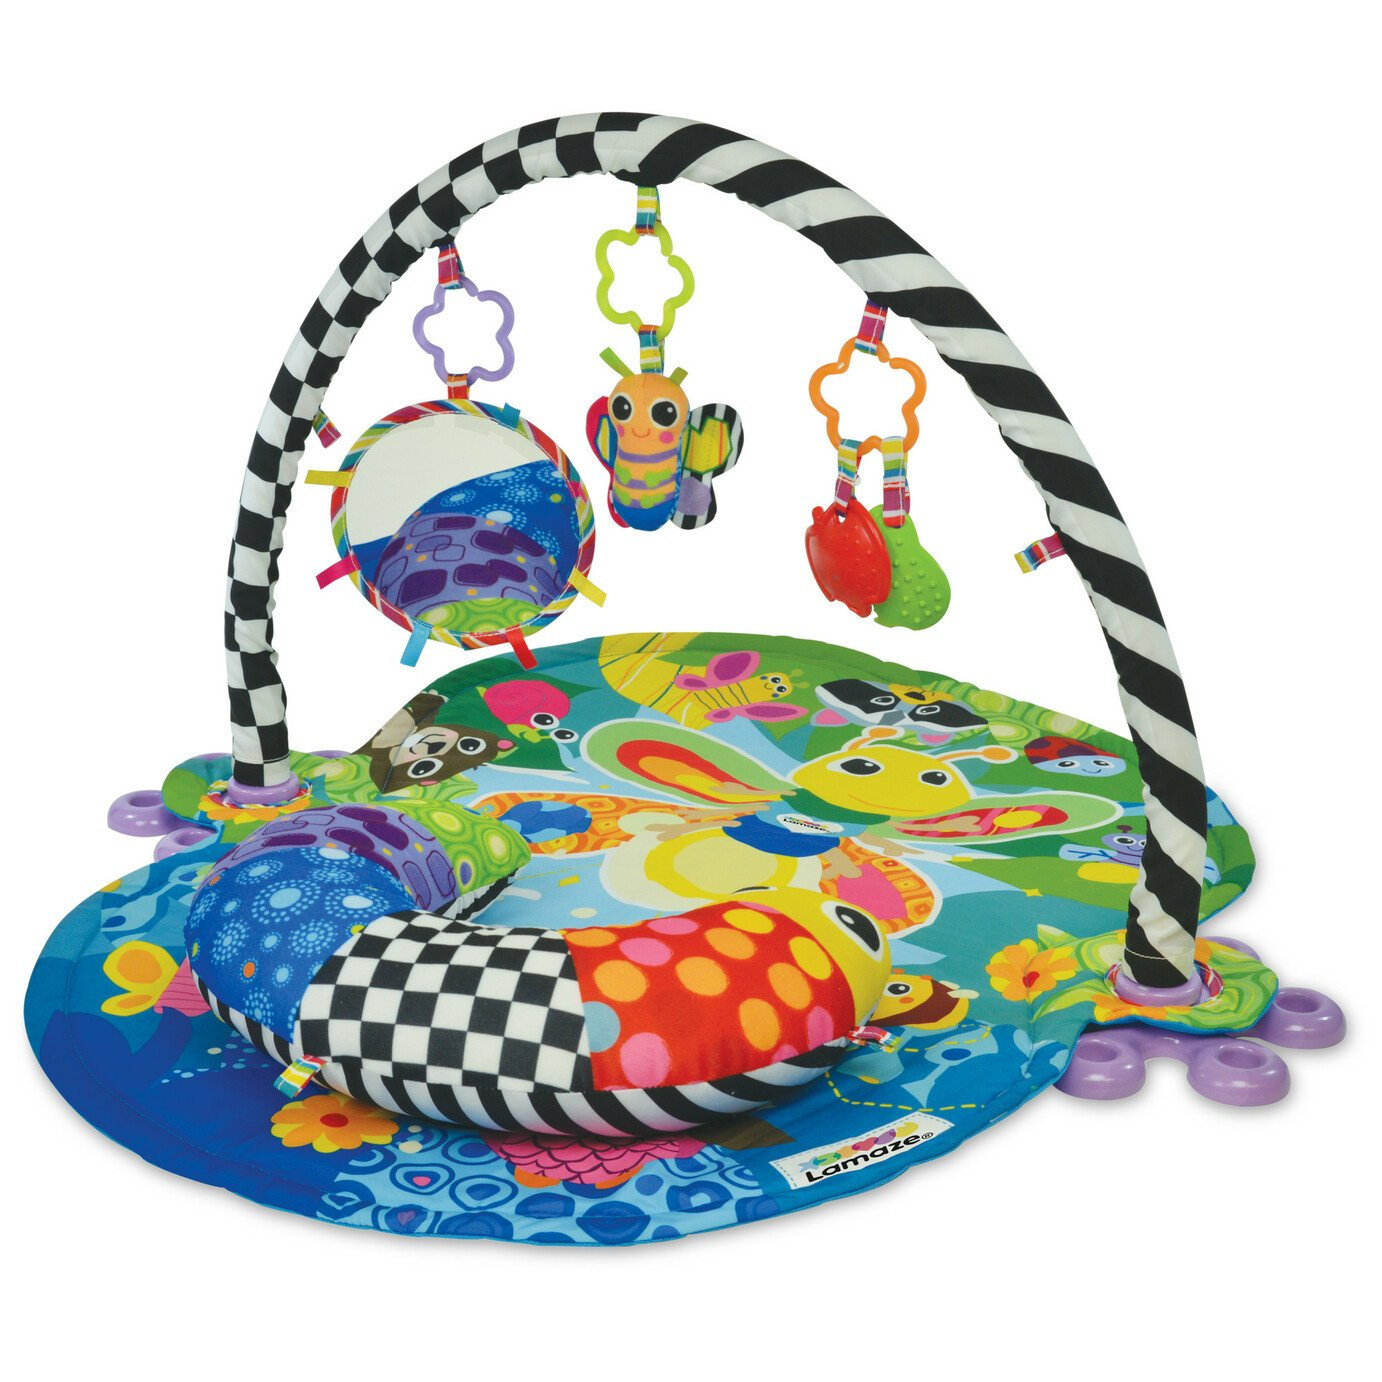 Tomy - Lamaze Freddie The Firefly Gym Activity Toy from lamaze